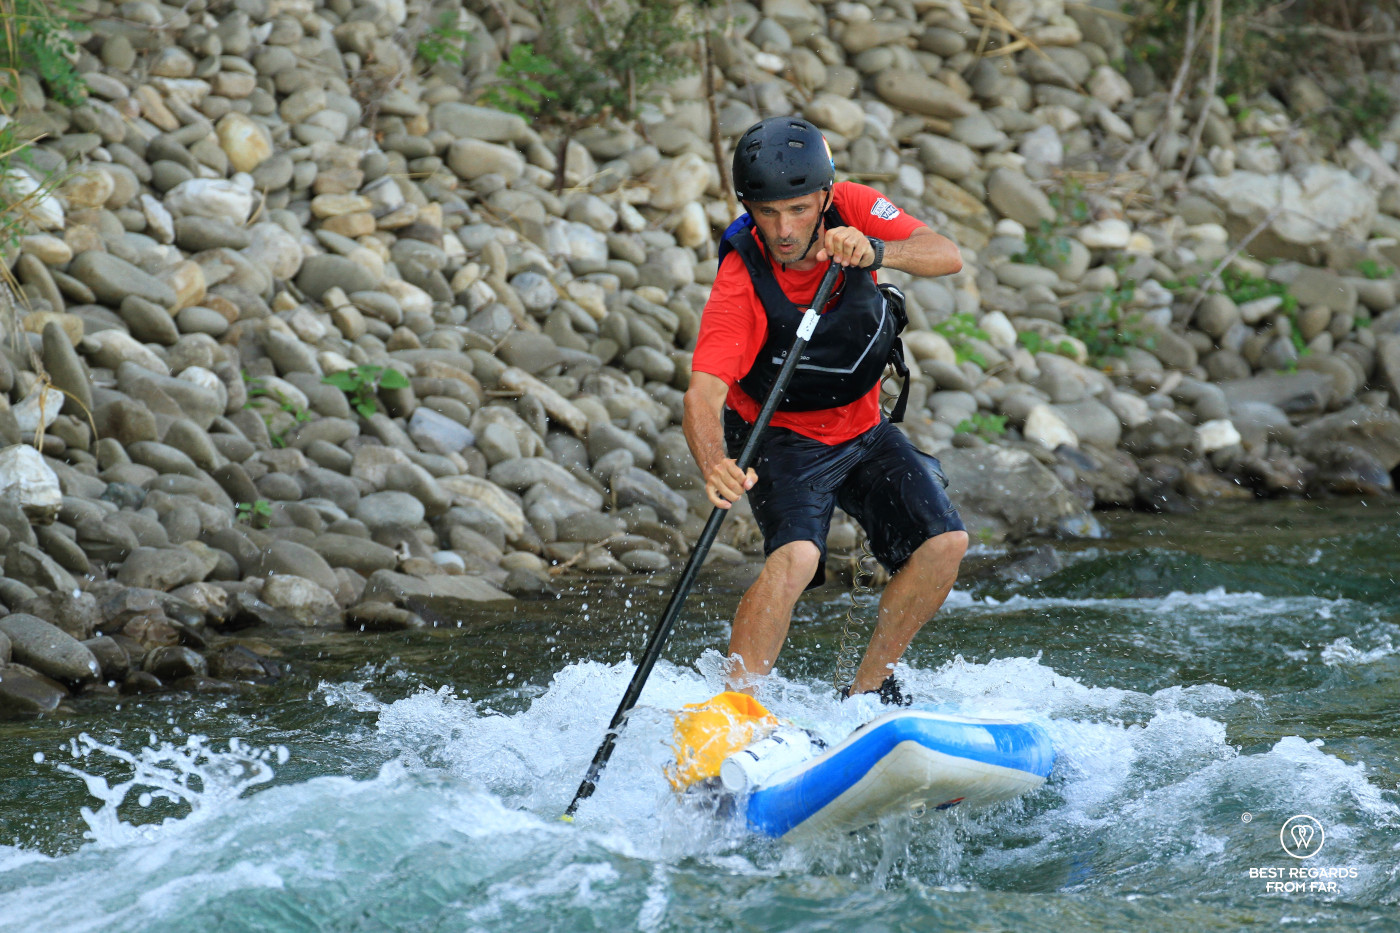 Stand Up Paddling the white waters of the Serchio River by Lucca, Italy.